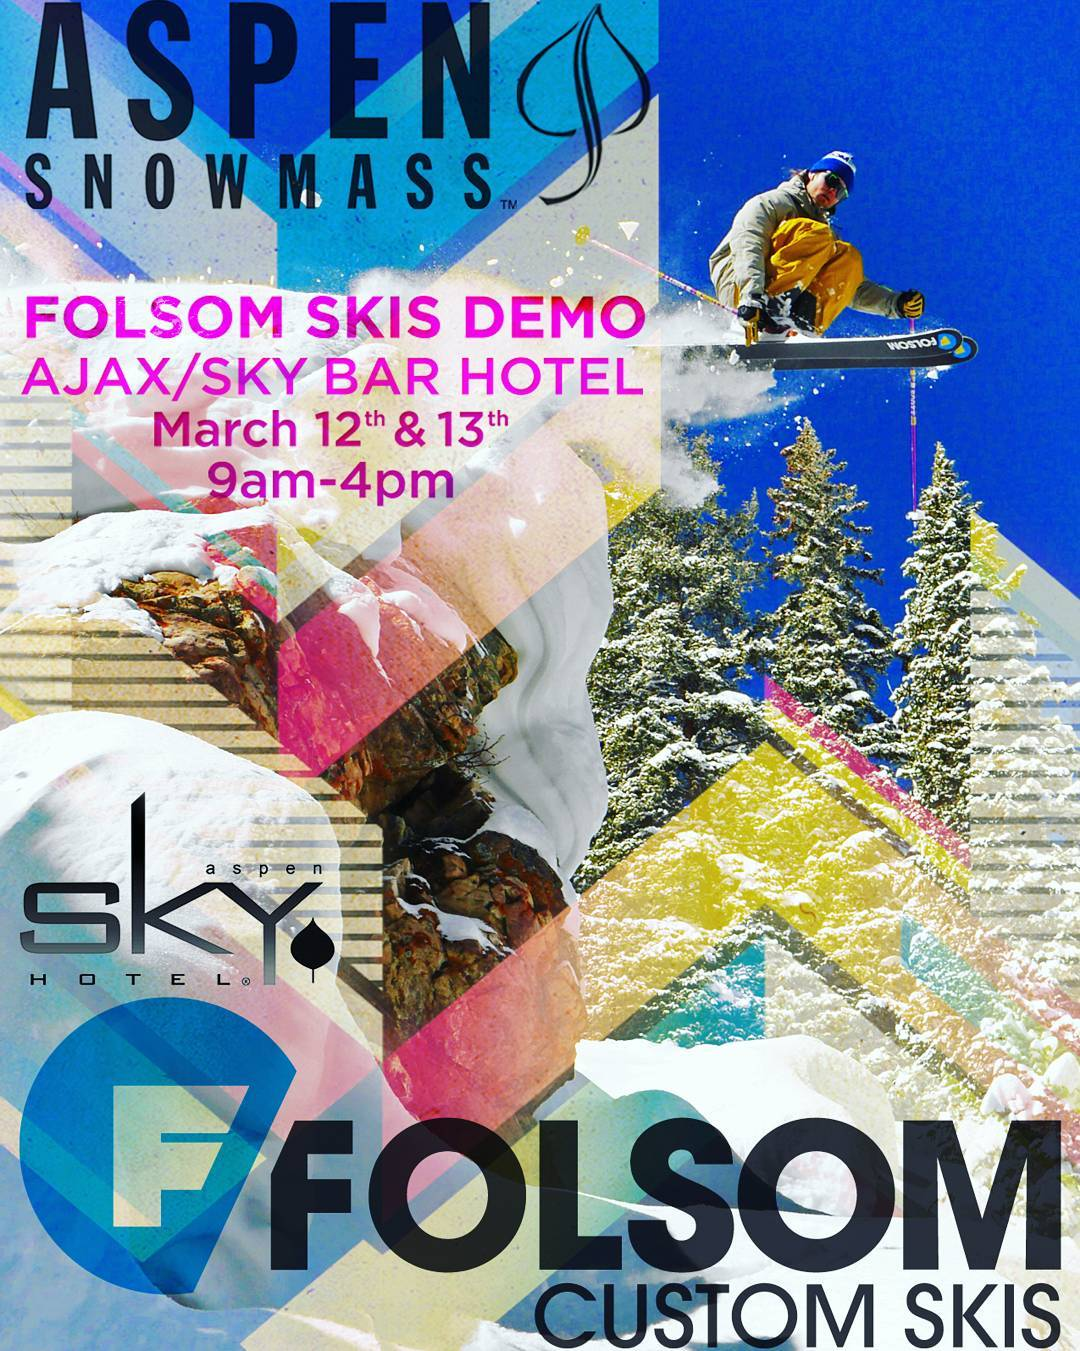 Shred with us @aspensnowmass this weekend! Get dialed in for next season by trying anything from our new demo fleet.